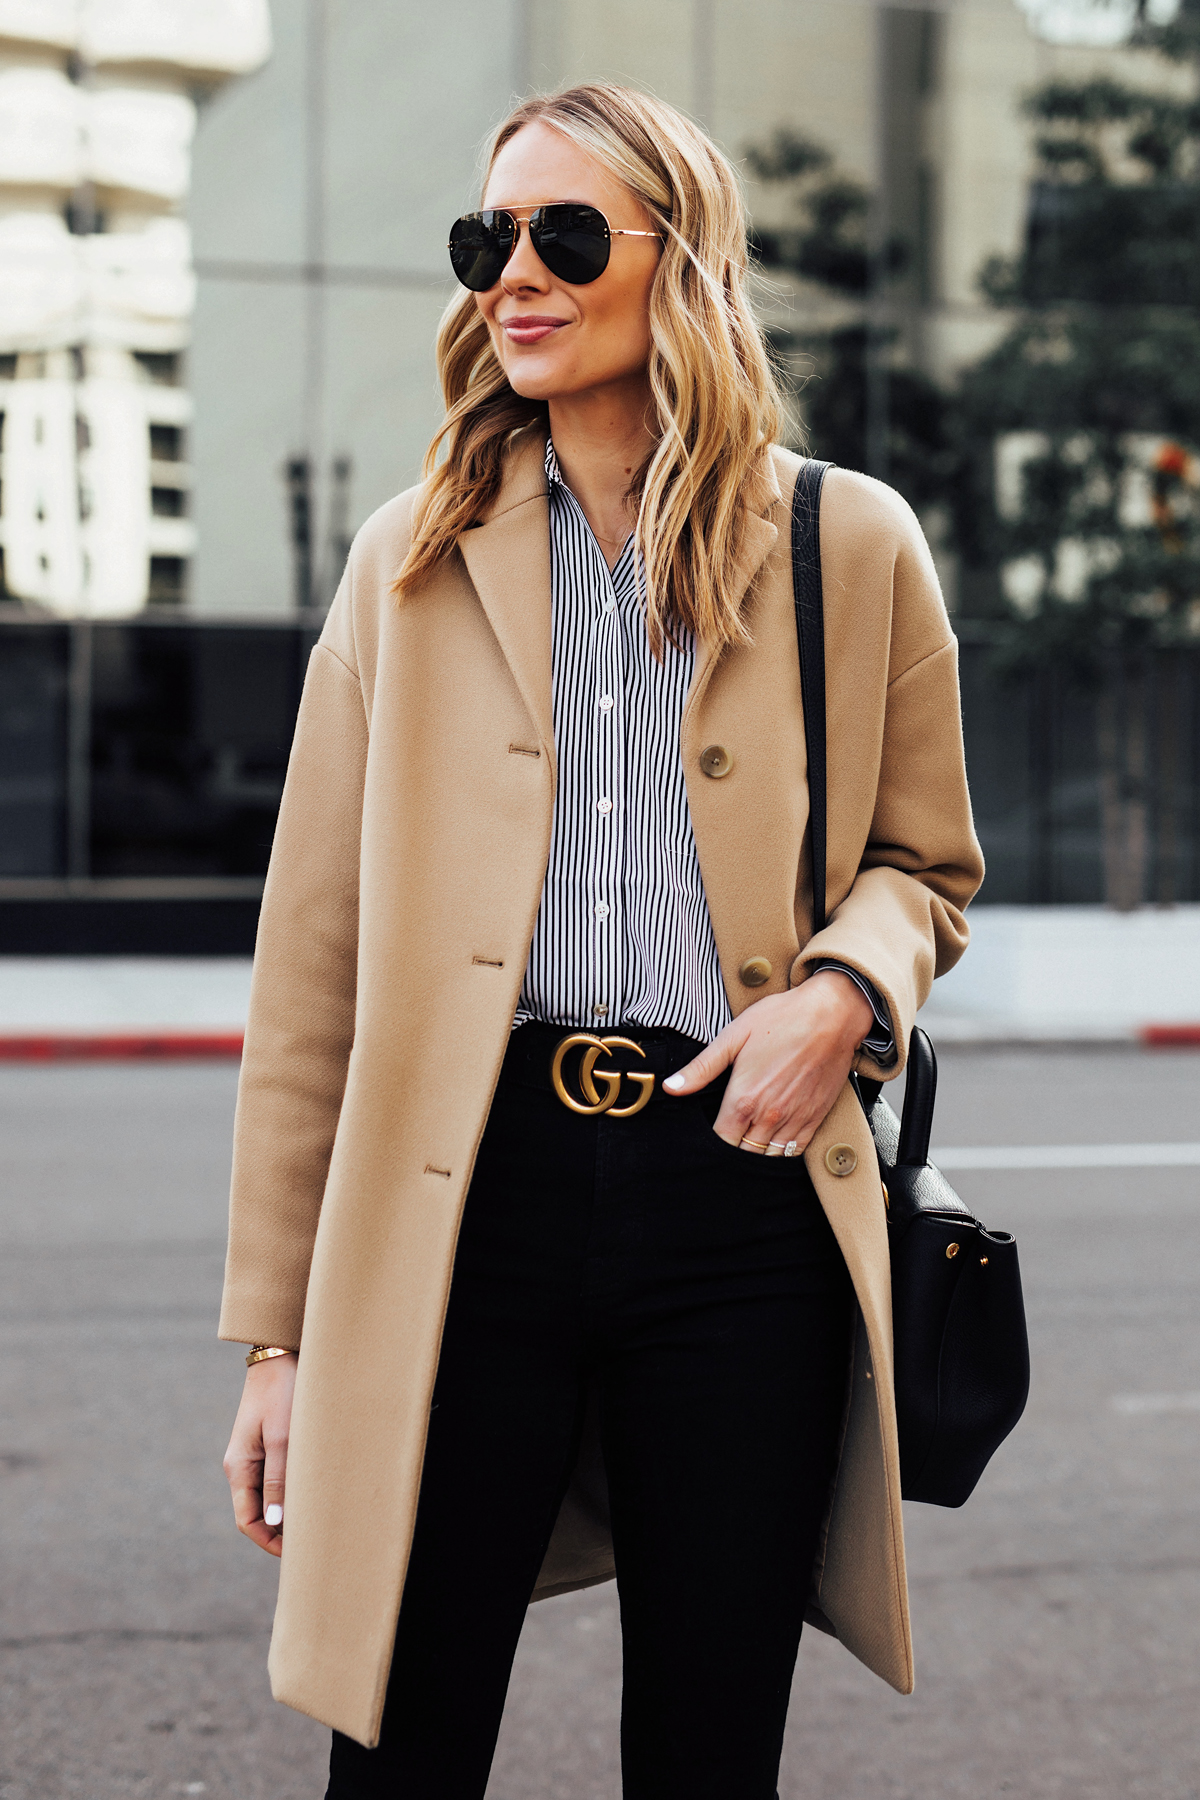 Blonde Woman Wearing Everlane Camel Coat Black White Stripe Button Down Shirt Black Skinny Jeans Black Gucci Belt Fashion Jackson San Diego Fashion Blogger Street Style